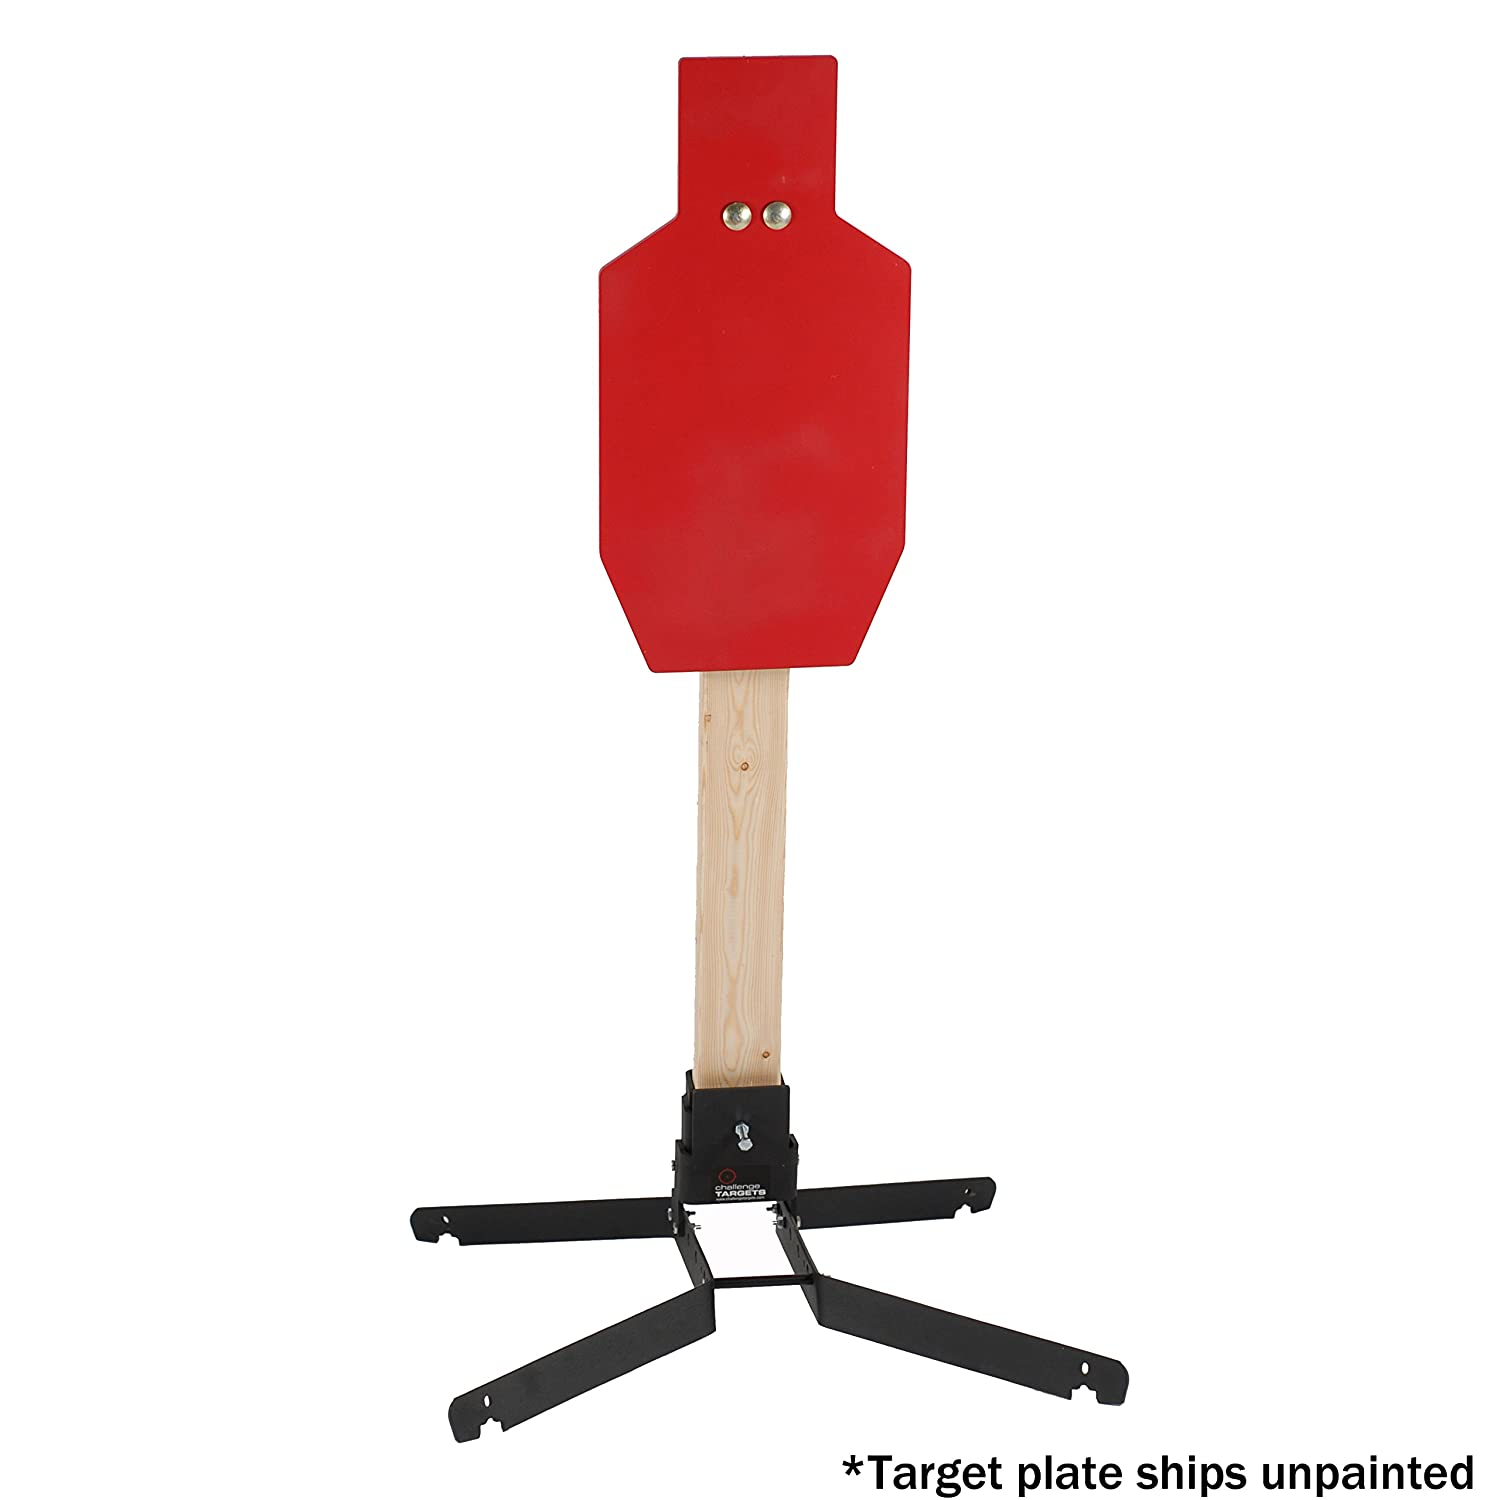 Amazon.com  Reactive Steel Target Stand with IPSC A-C Zone AR500 Rifle Target  Hunting Targets And Accessories  Sports u0026 Outdoors  sc 1 st  Amazon.com & Amazon.com : Reactive Steel Target Stand with IPSC A-C Zone AR500 ...